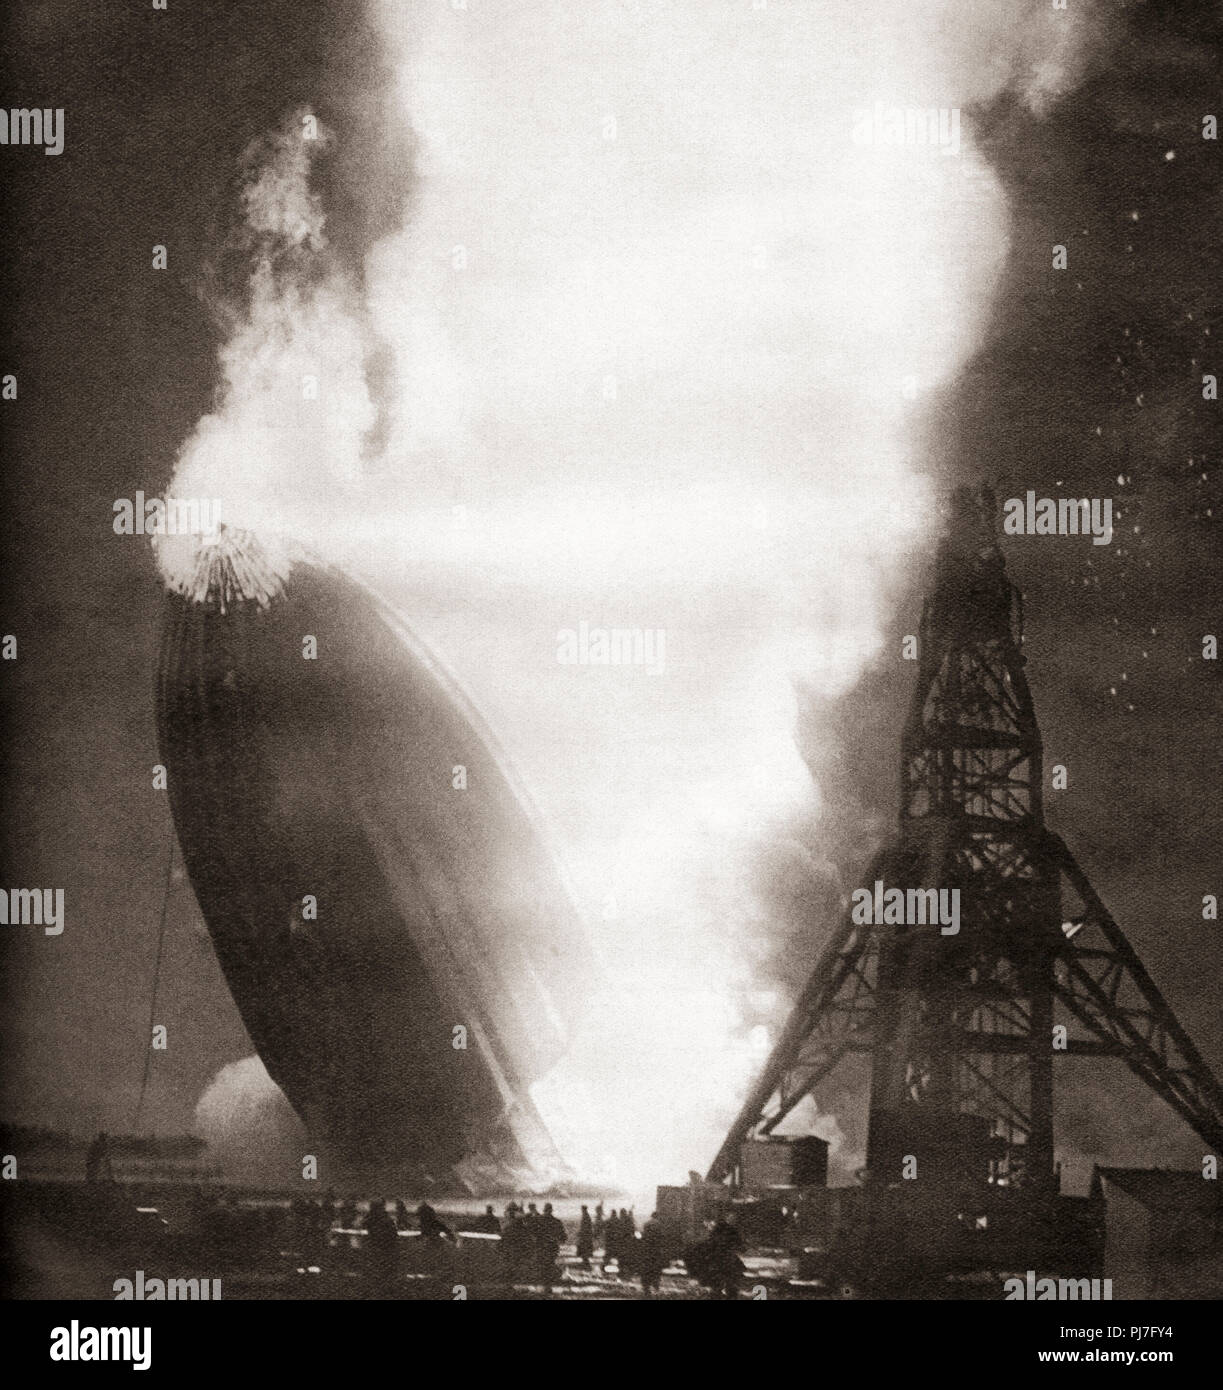 The Hindenburg disaster, May 6, 1937.  The German passenger airship LZ 129 Hindenburg caught fire and was destroyed whilst trying to dock with its mooring mast at the Naval Air Station Lakehurst,  Manchester Township, New Jersey, United States of America.  From These Tremendous Years, published 1938. - Stock Image